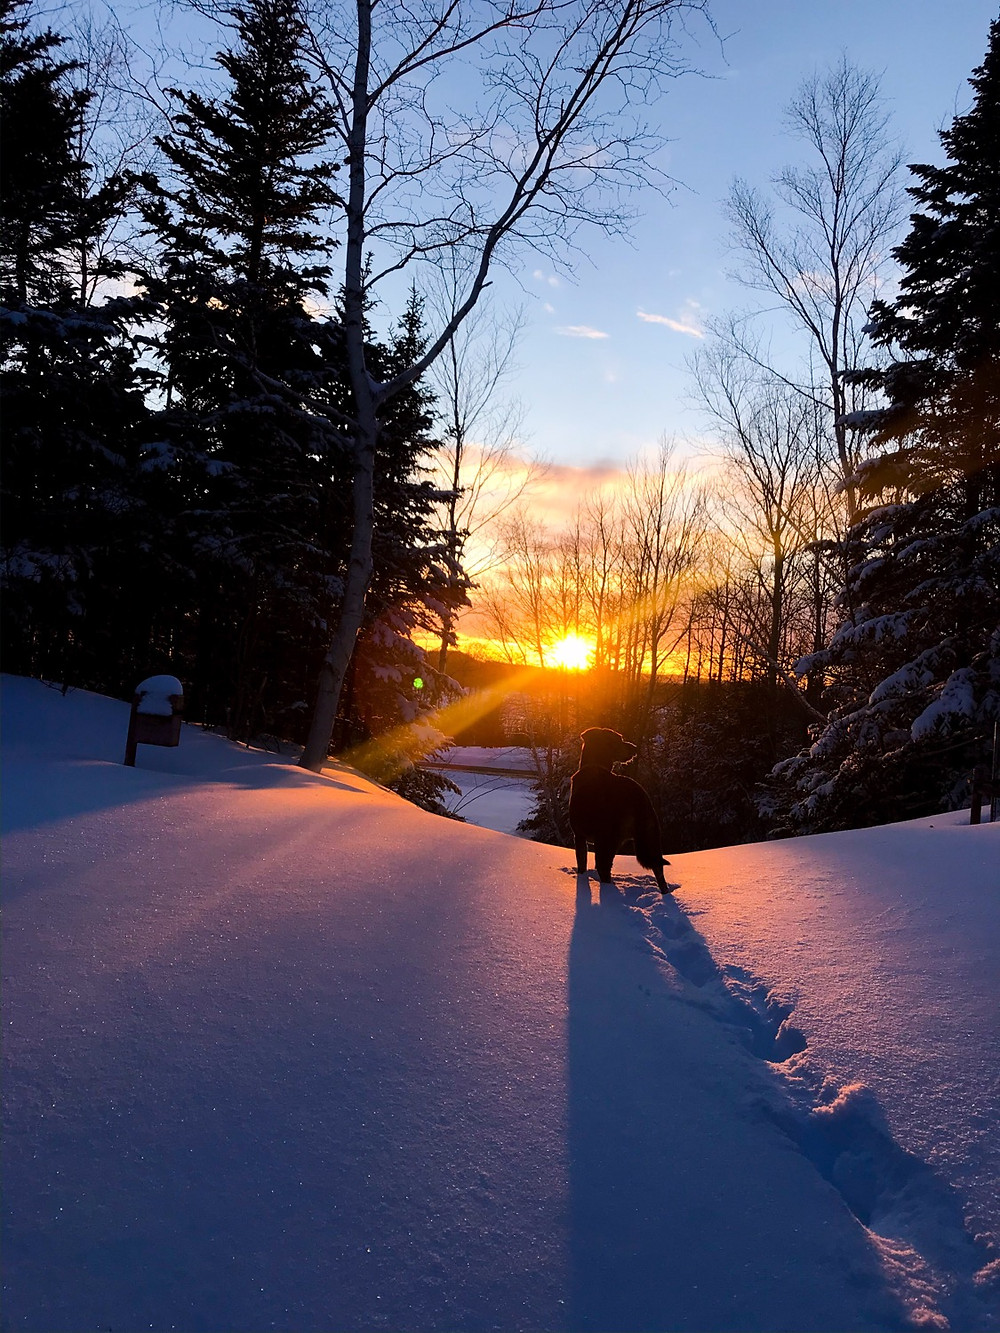 A dog in snow and a sunset